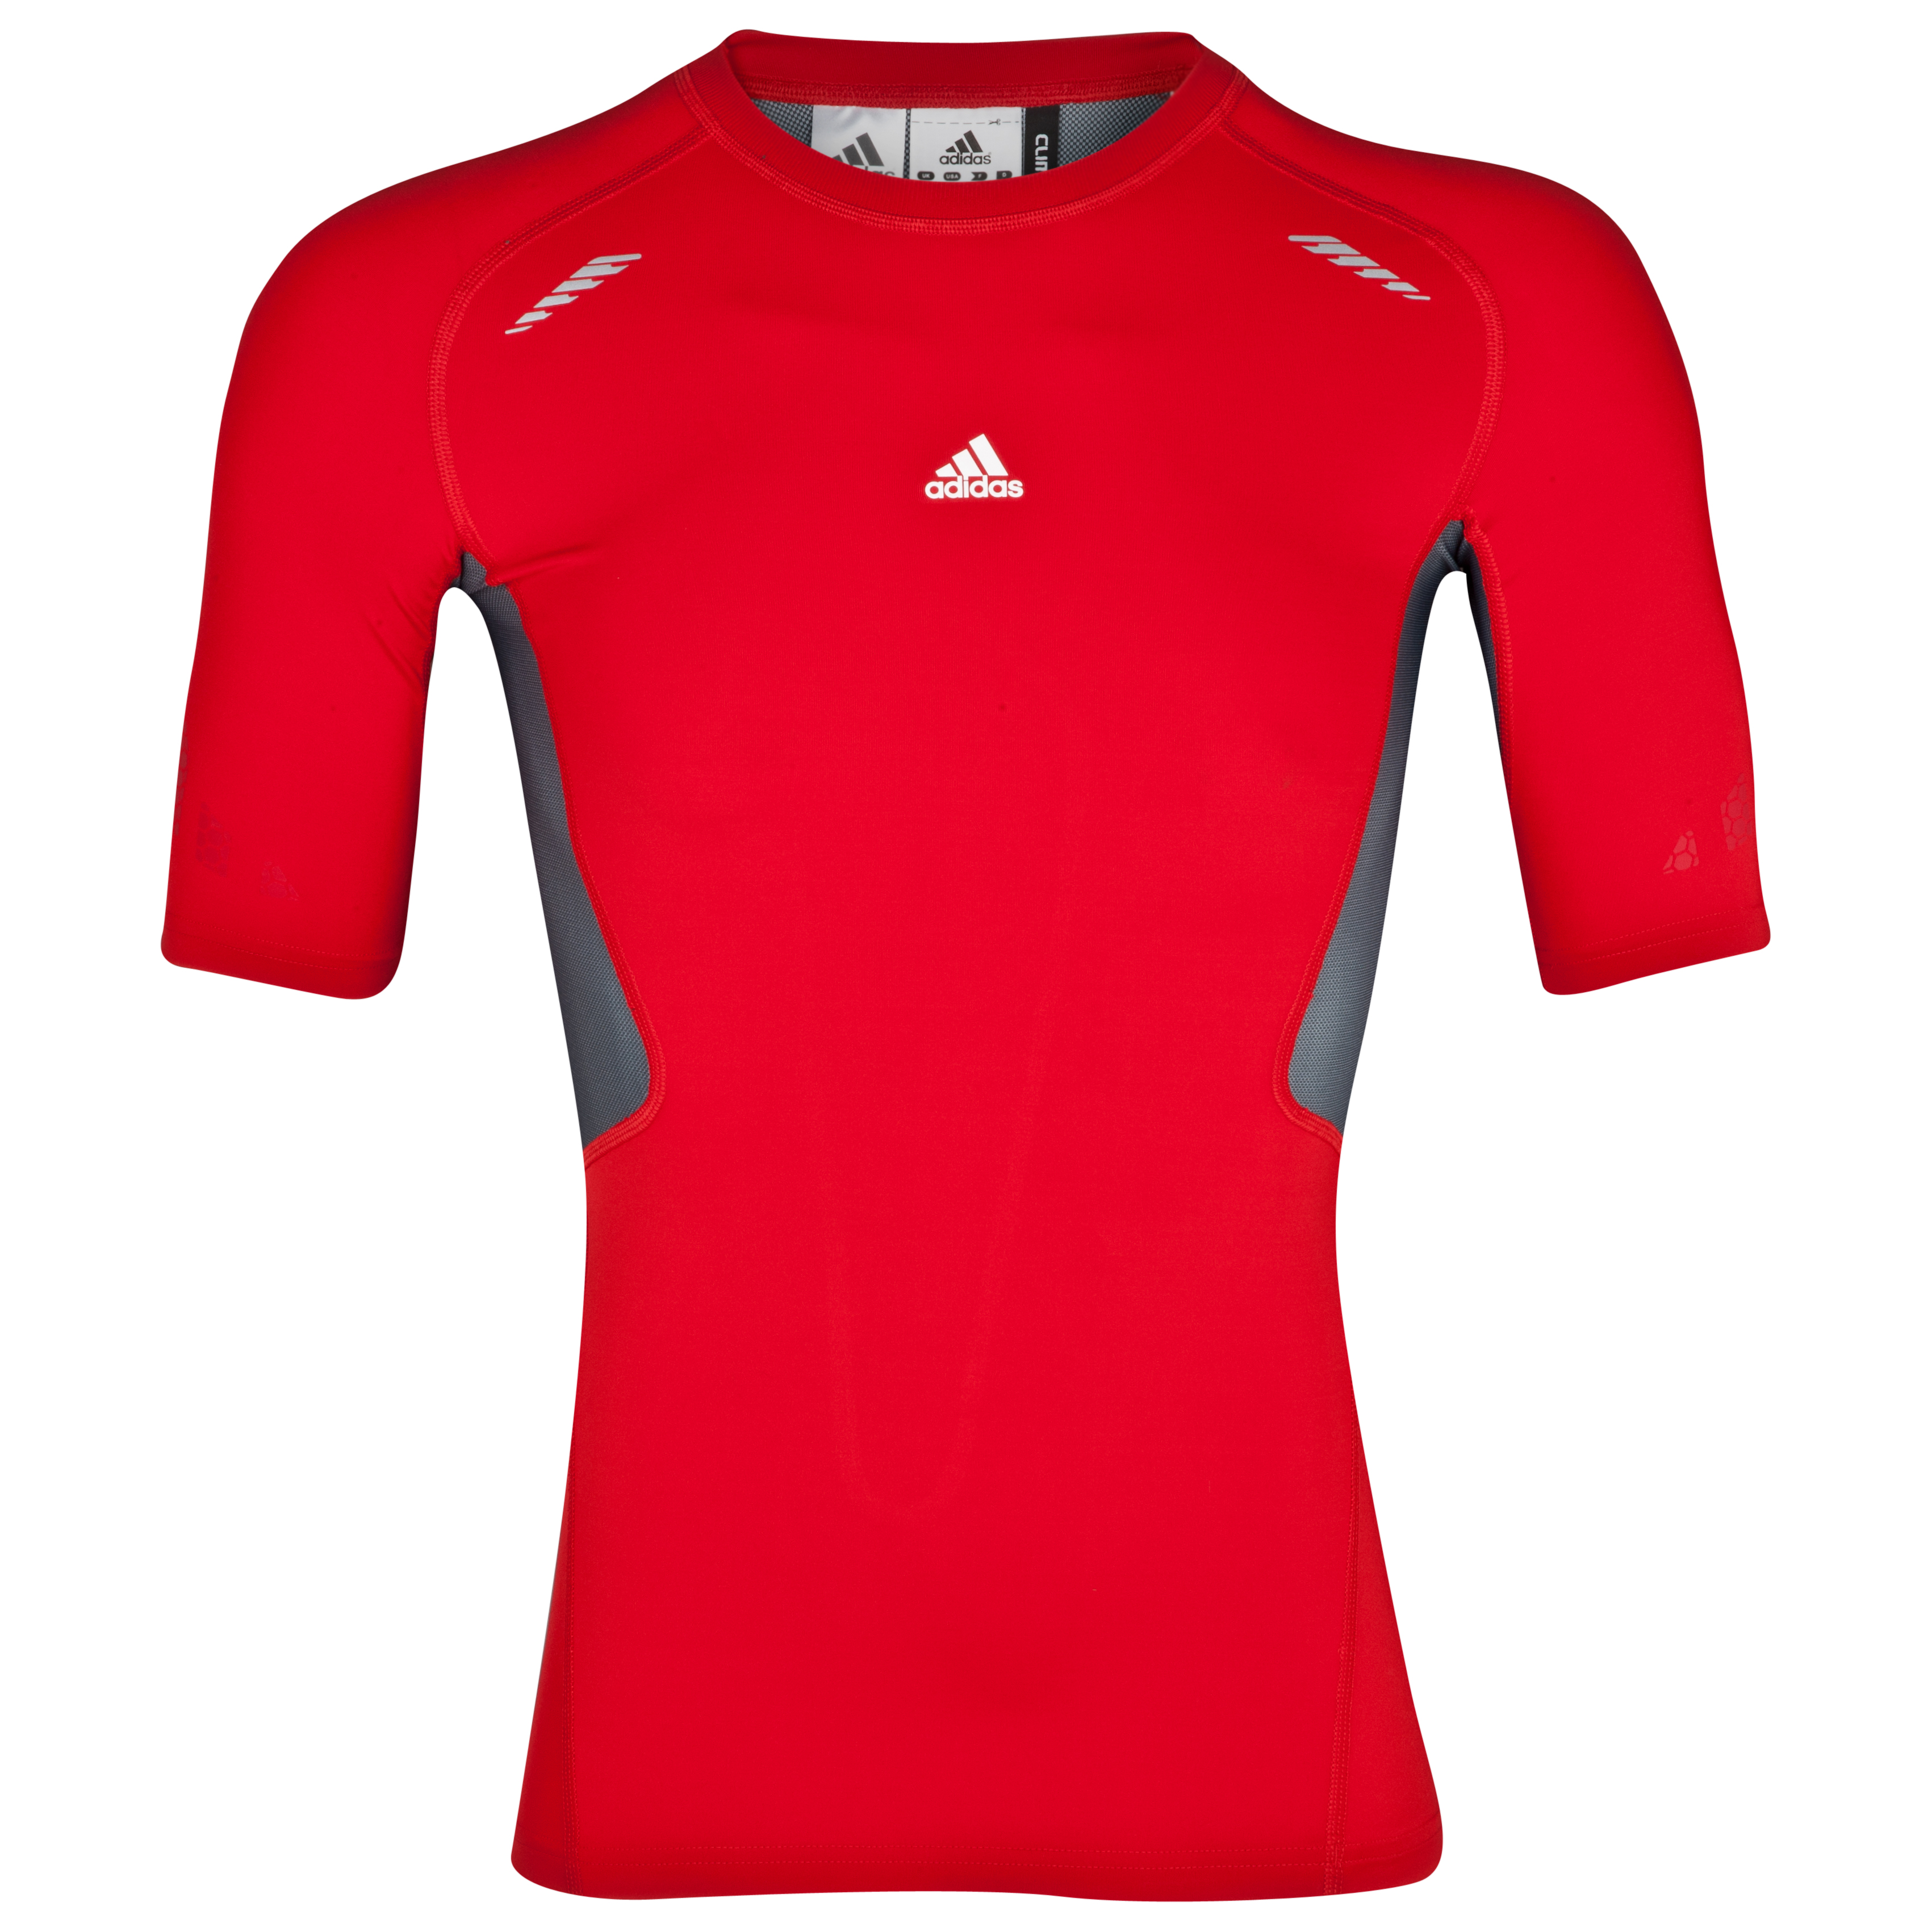 adidas TechFit Preperation Baselayer Top - Short Sleeve - Light Scarlet